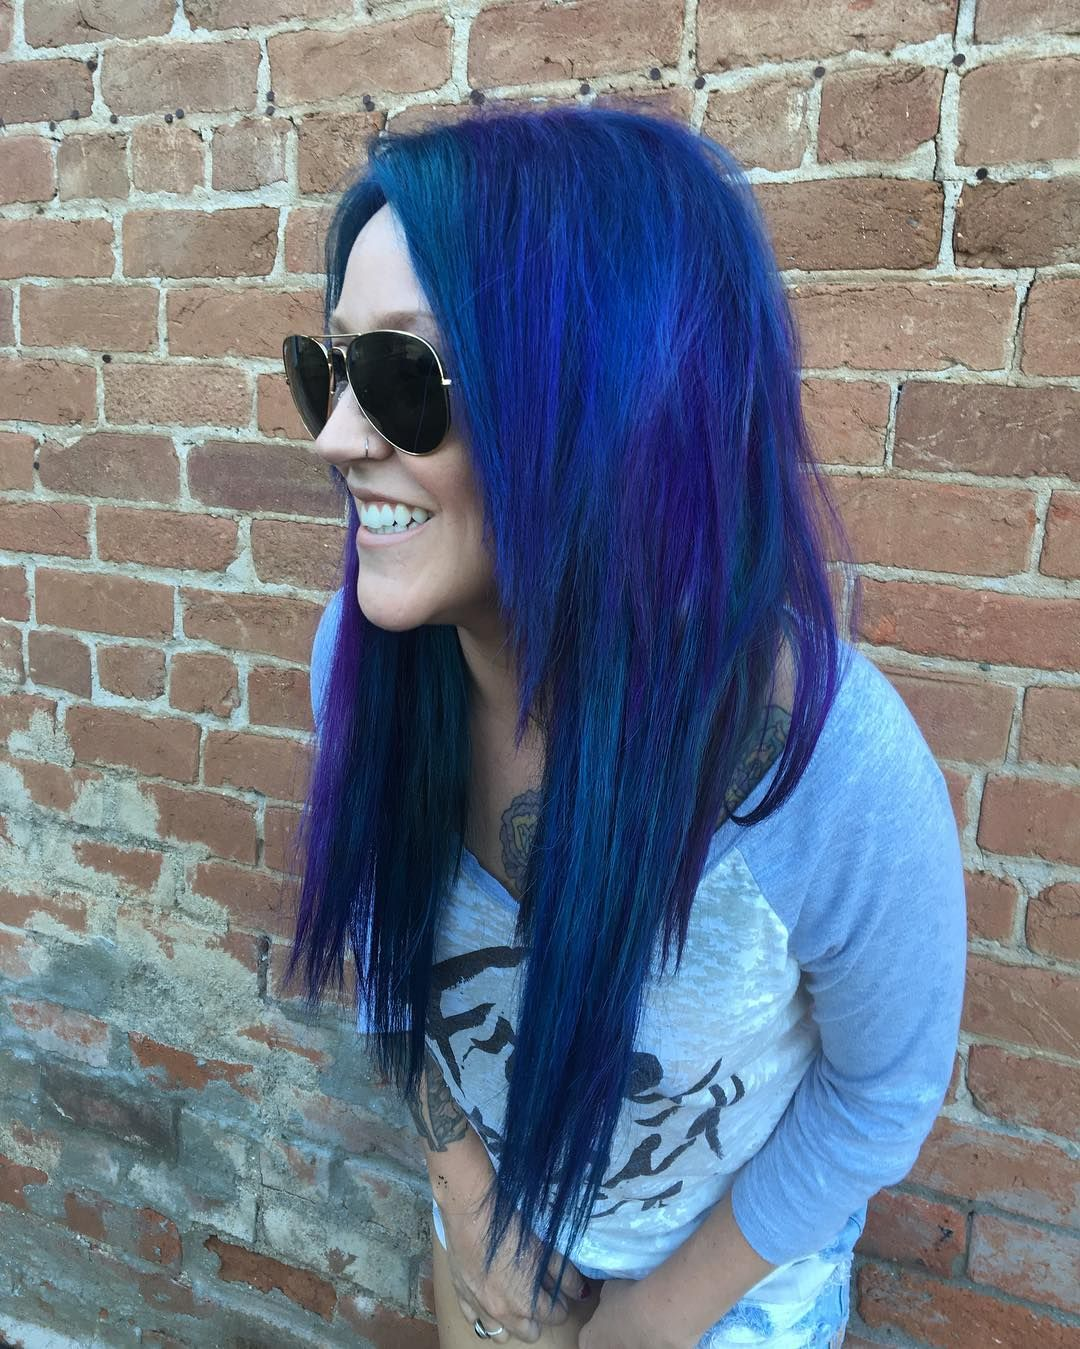 35 Breathtaking Blue and Purple Hair Ideas — Fantasy Colors to Brighten Your Life